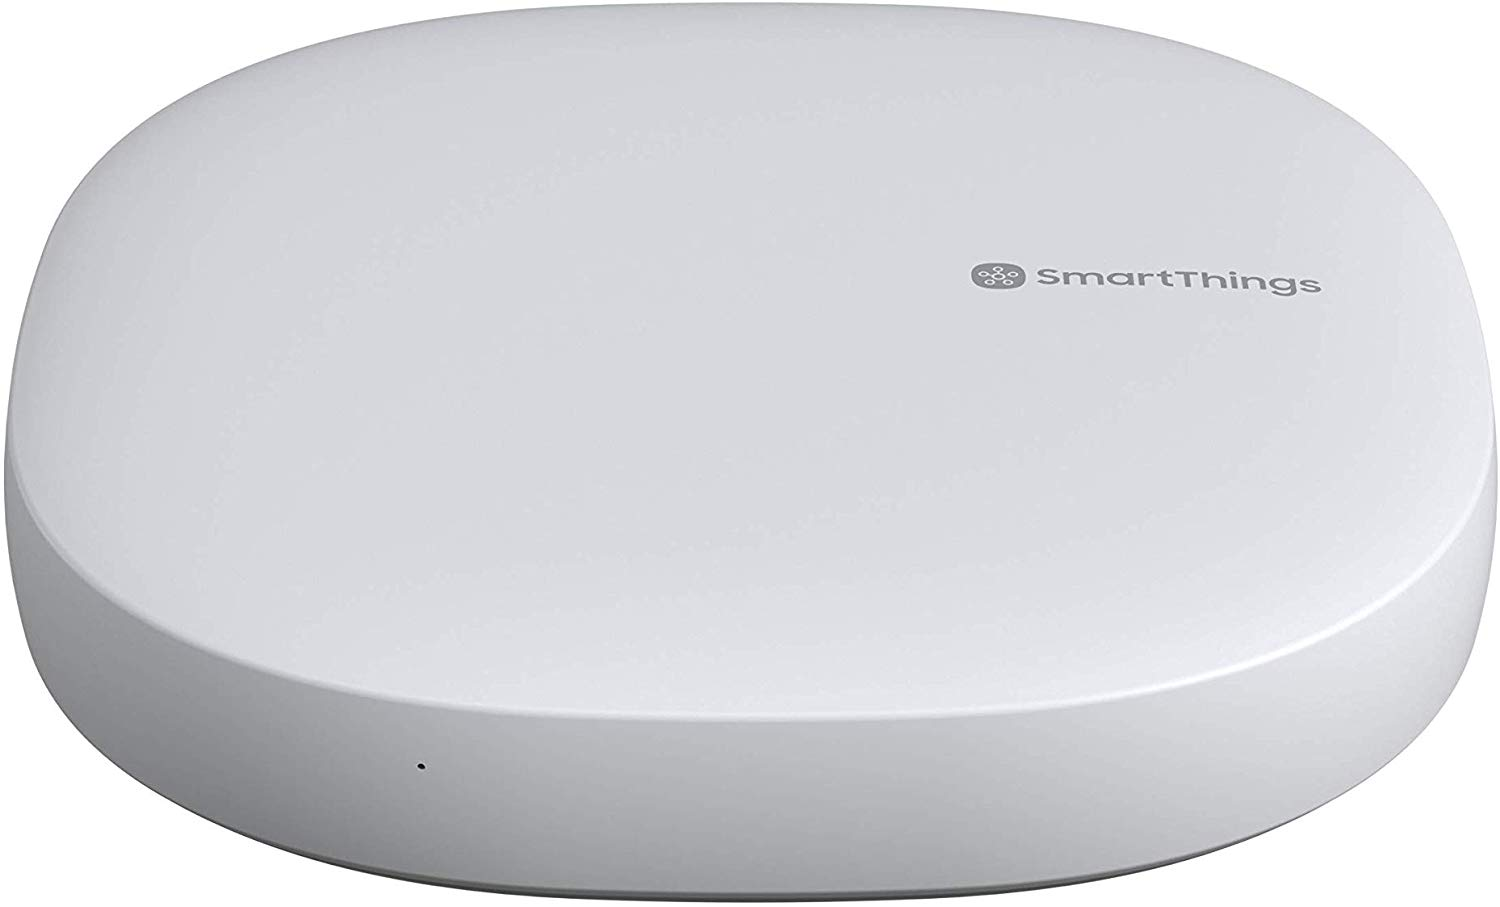 Save £20 on SmartThings Hub (V3), Wirelessly Connect Your Smart Devices, Zigbee, Z-Wave and Wi-Fi